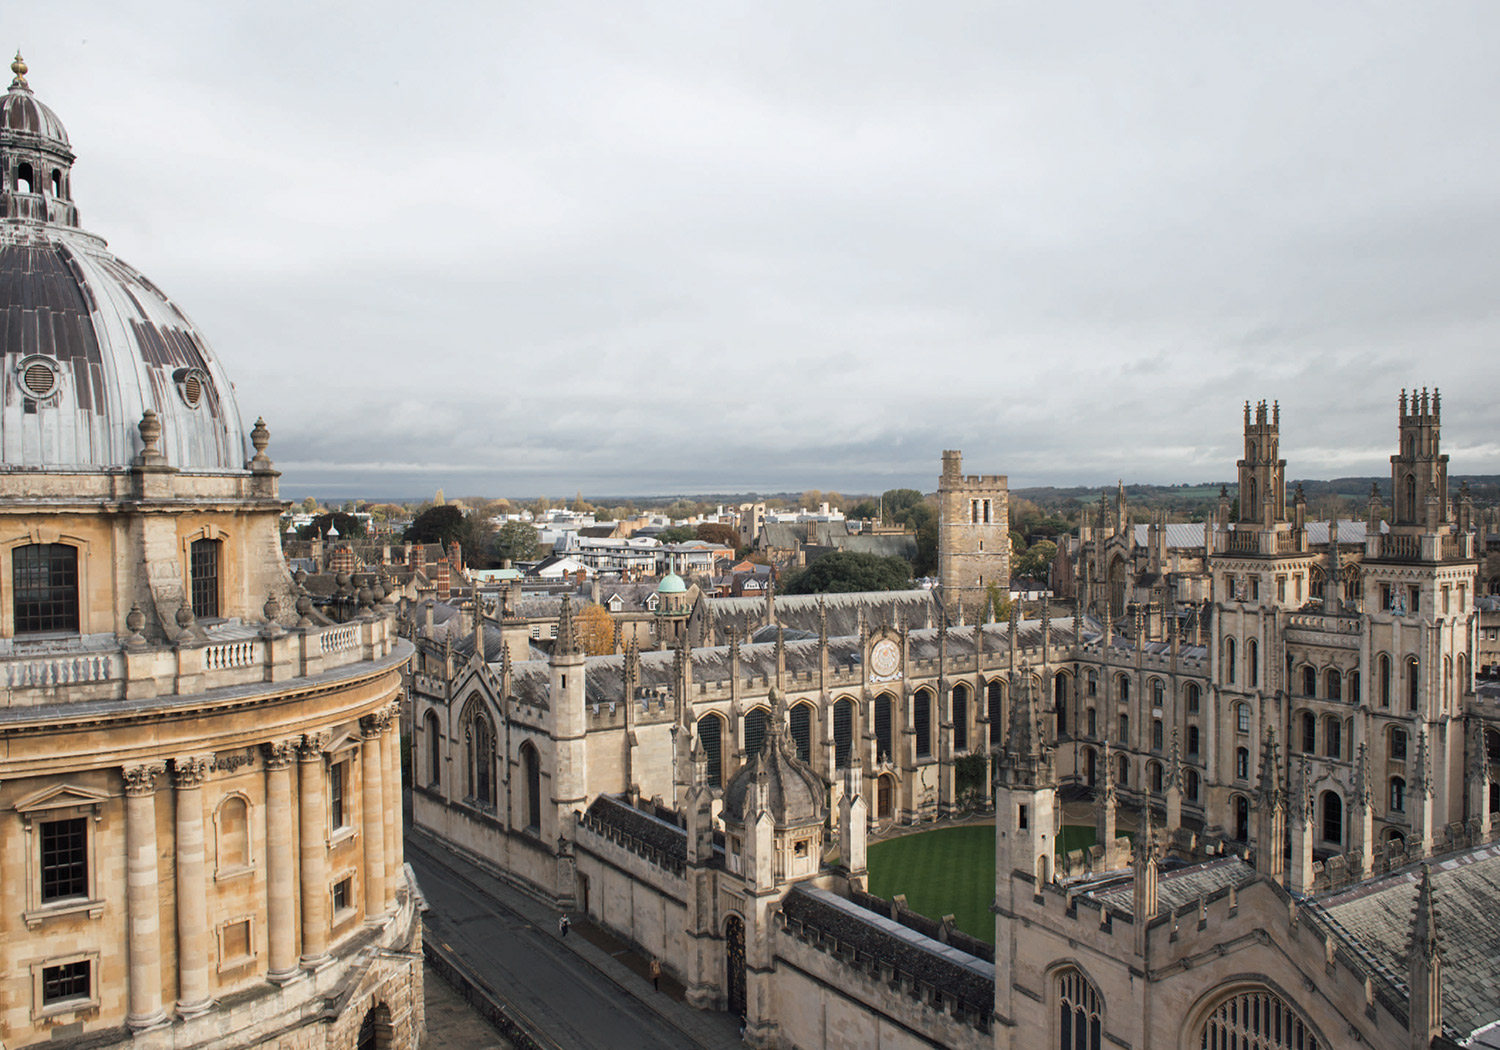 Projects-Education-NewCollegeOxford-VisualTwo-1500x1050